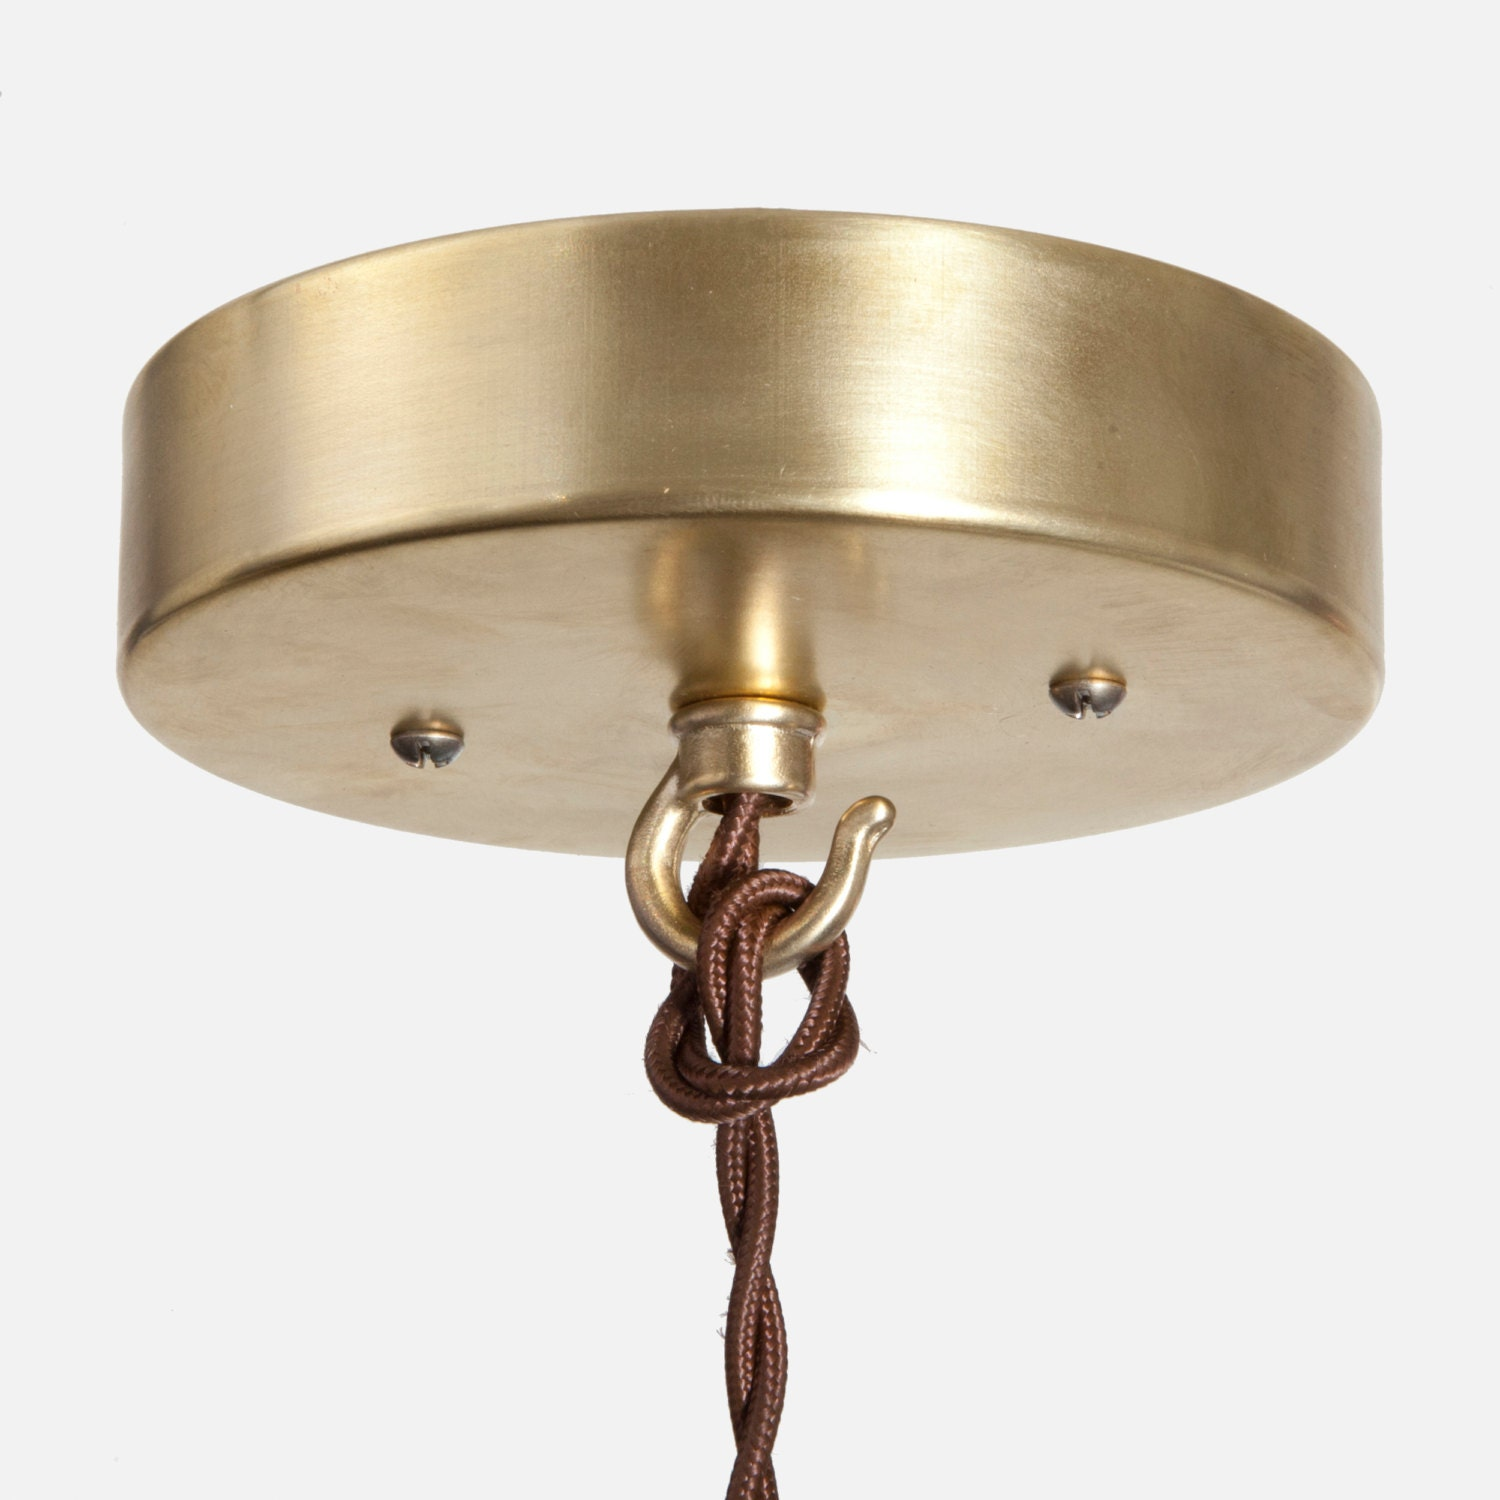 Ceiling Canopy Kit Raw Brass Hook Pendant Light Ceiling Box